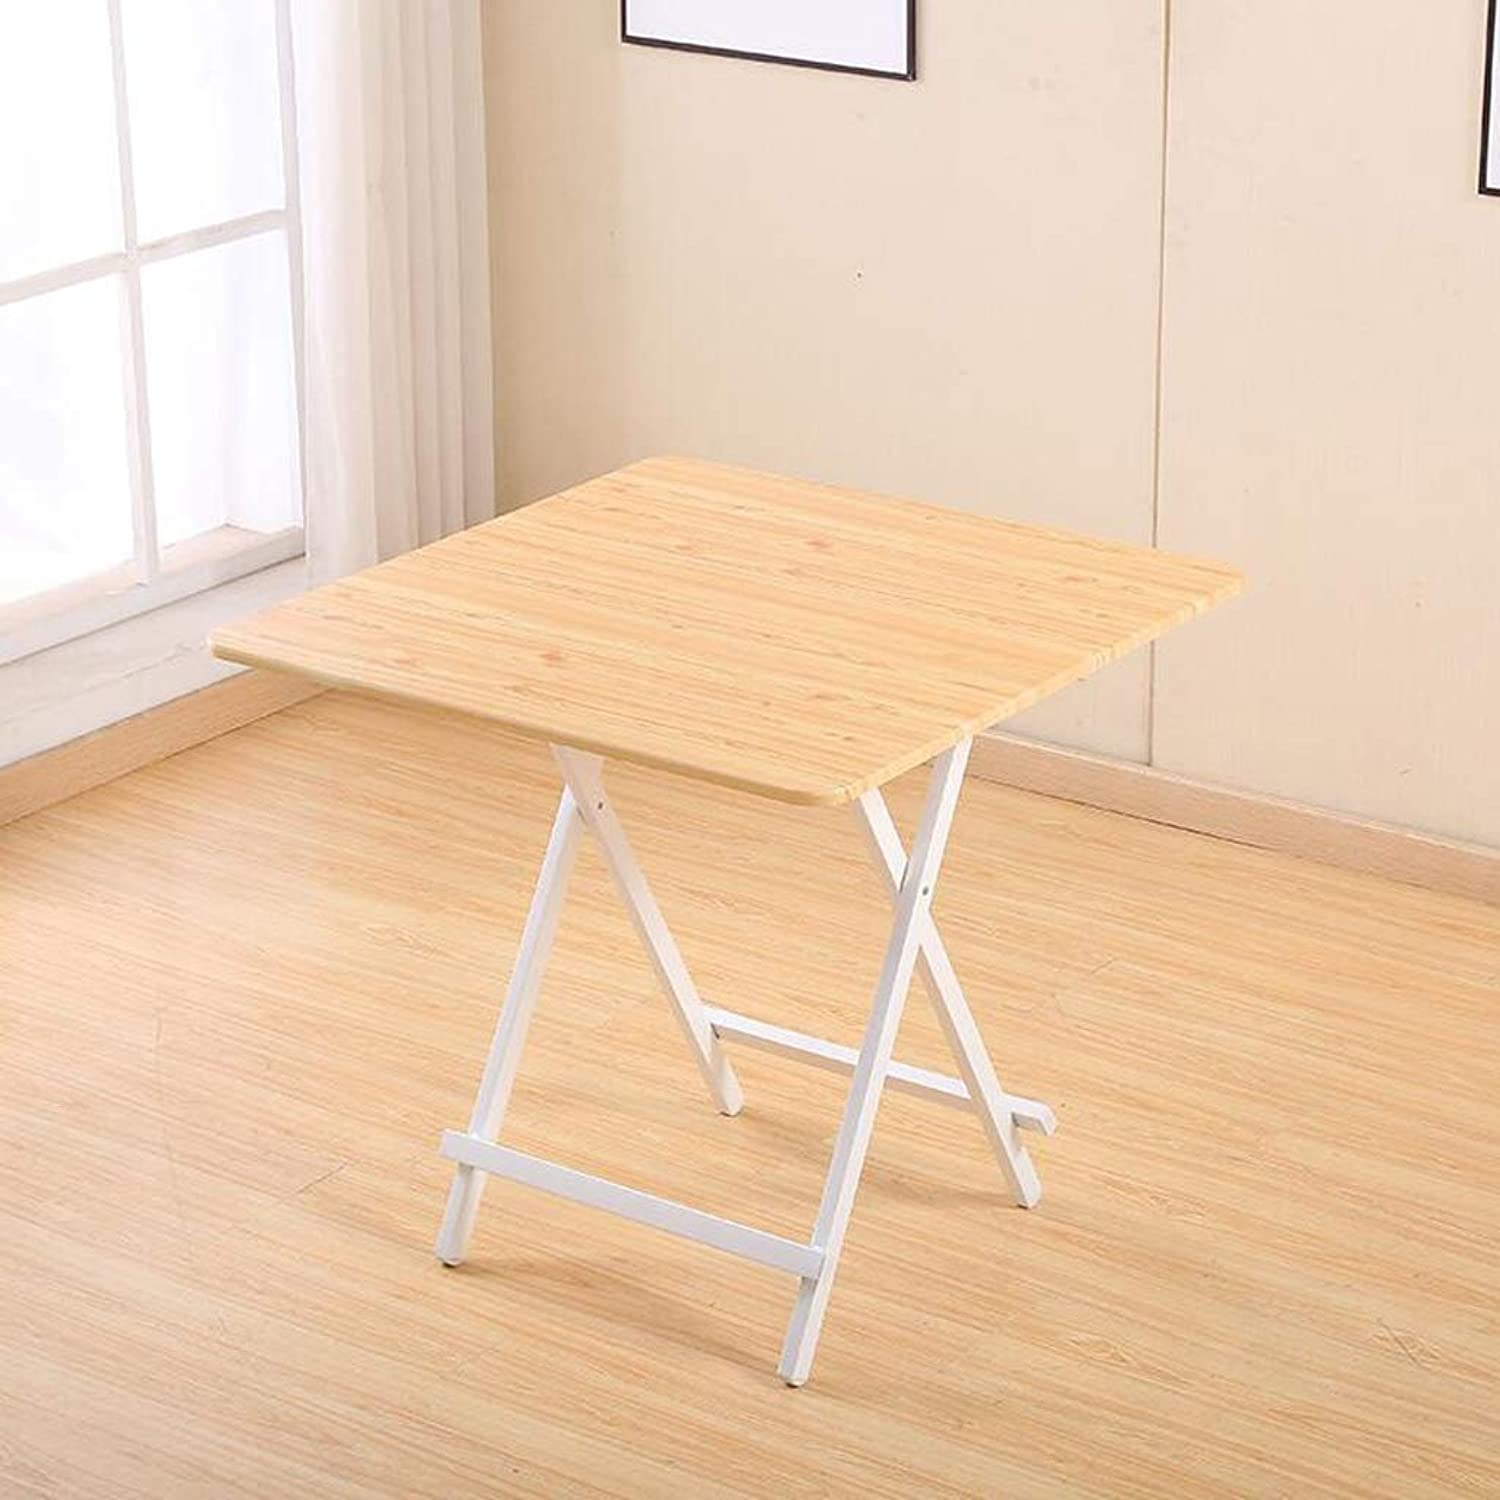 SHWSM Folding Table Home Dining Table Small Apartment Simple Small Round Rice Table Portable Small Square Table Folding Table (color   B, Size   80×80×74cm)